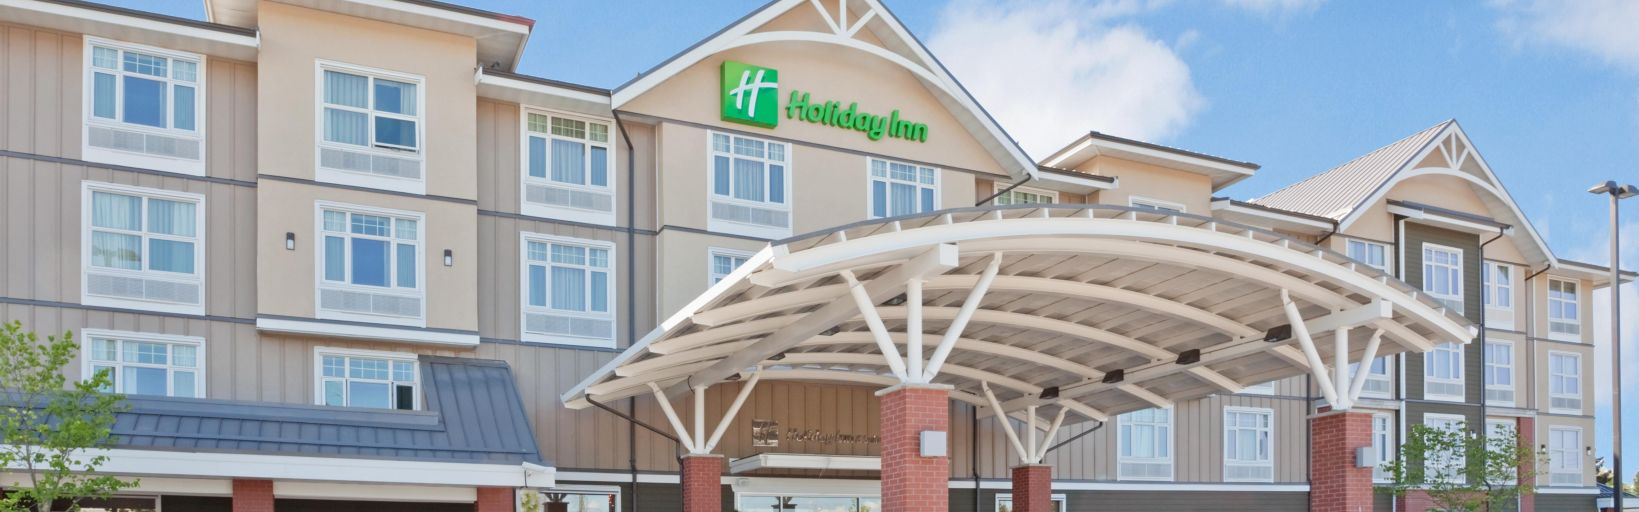 Holiday Inn Suites Hotel Surrey Bc